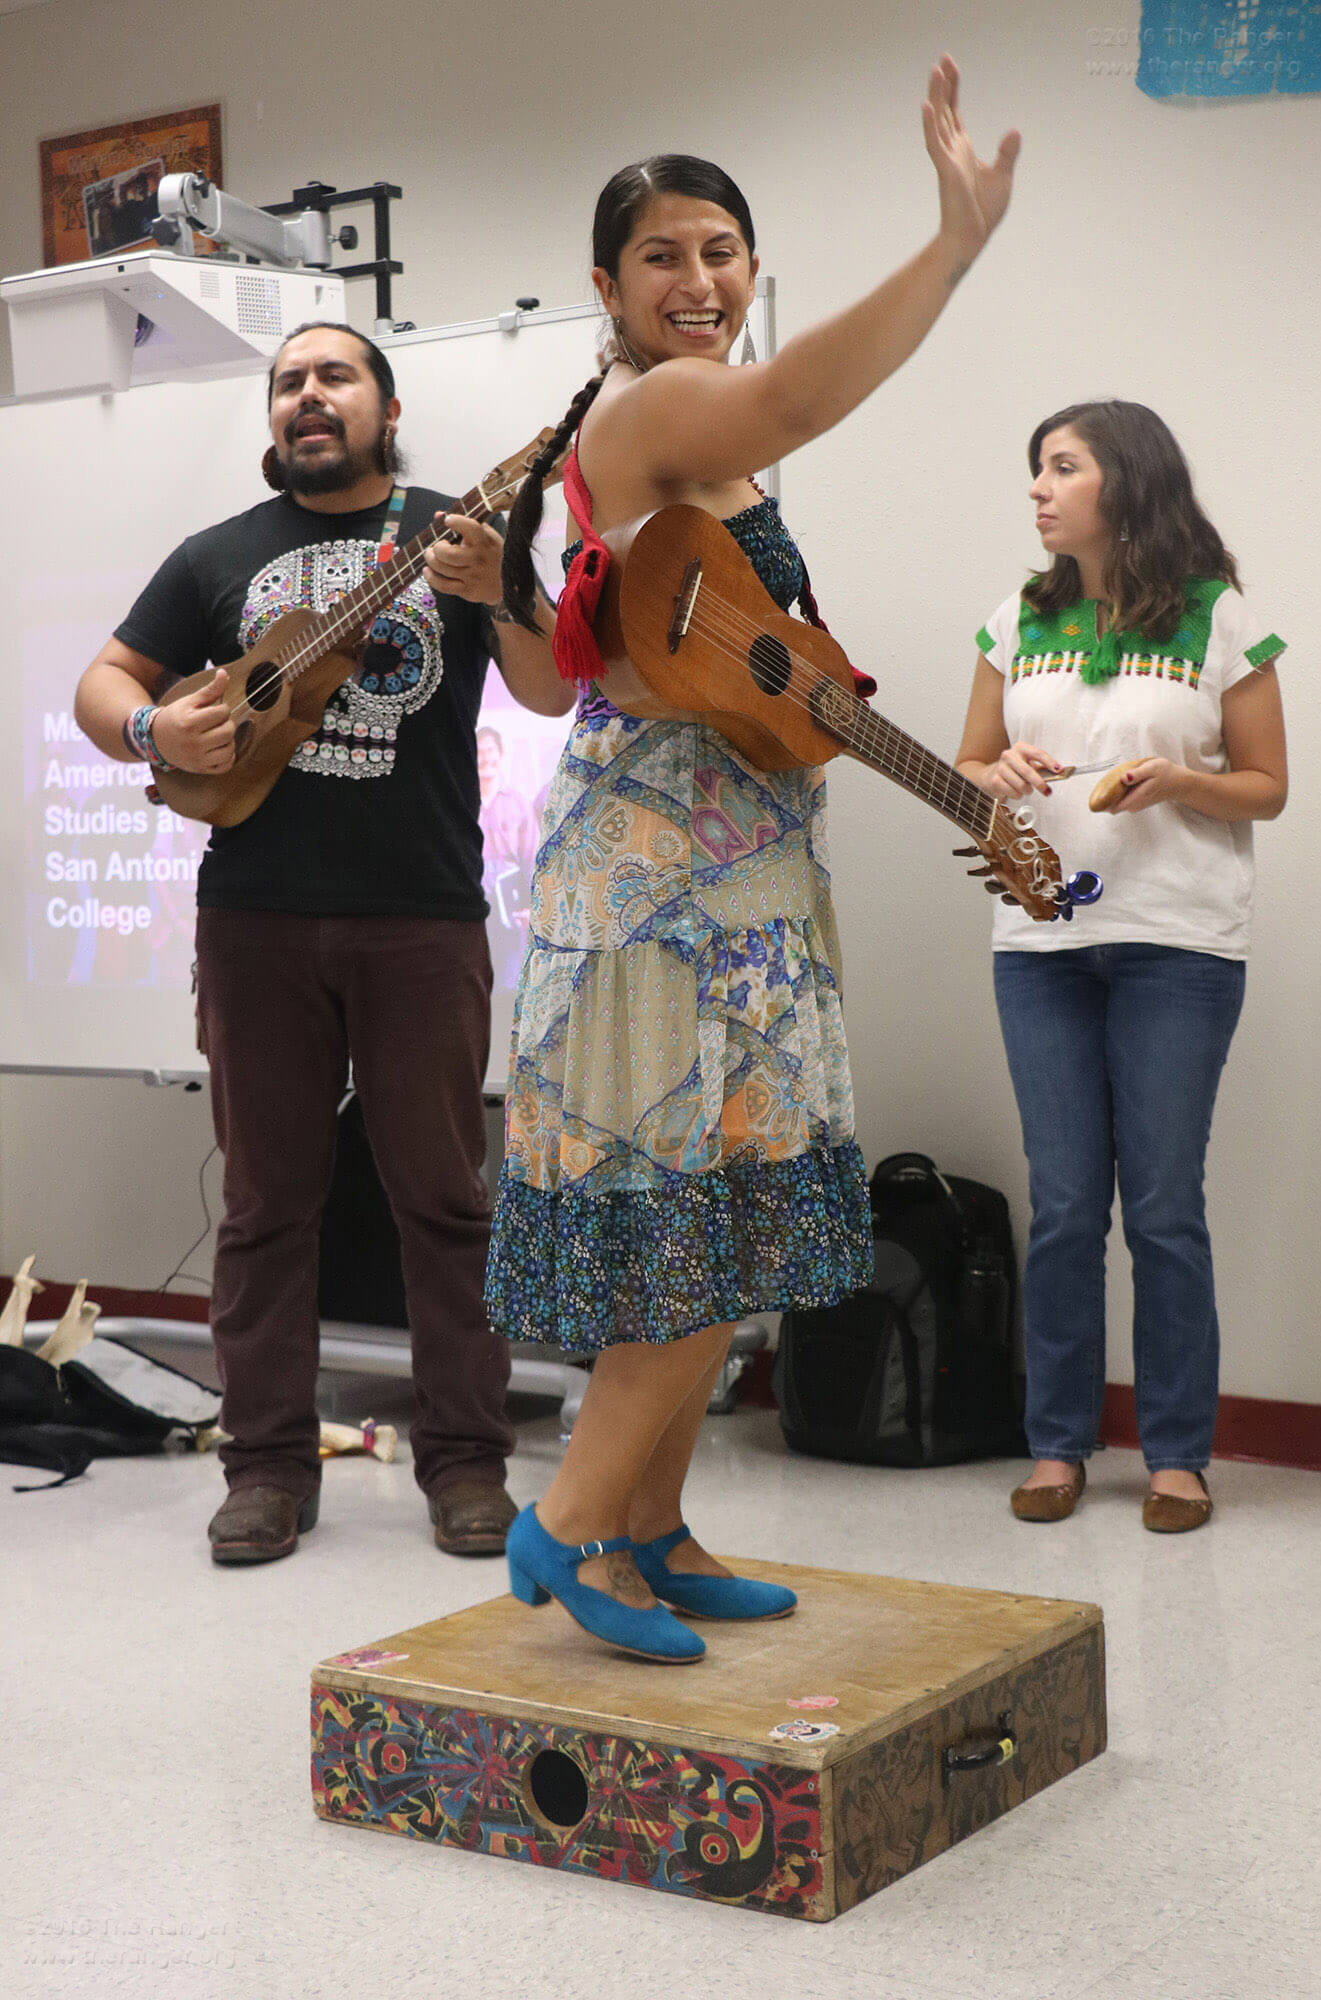 Keli Rosa Cabunoc from the Son Jarocho band Tallercito de Son performs a traditional Mexican dance style, zapateado, in which the dancer strikes hard-soled shoes on a tarima platform to create percussion, at the Mexican-American Studies program's open house Oct. 4 in Room 100 of Chance. Photo by Alison Graef